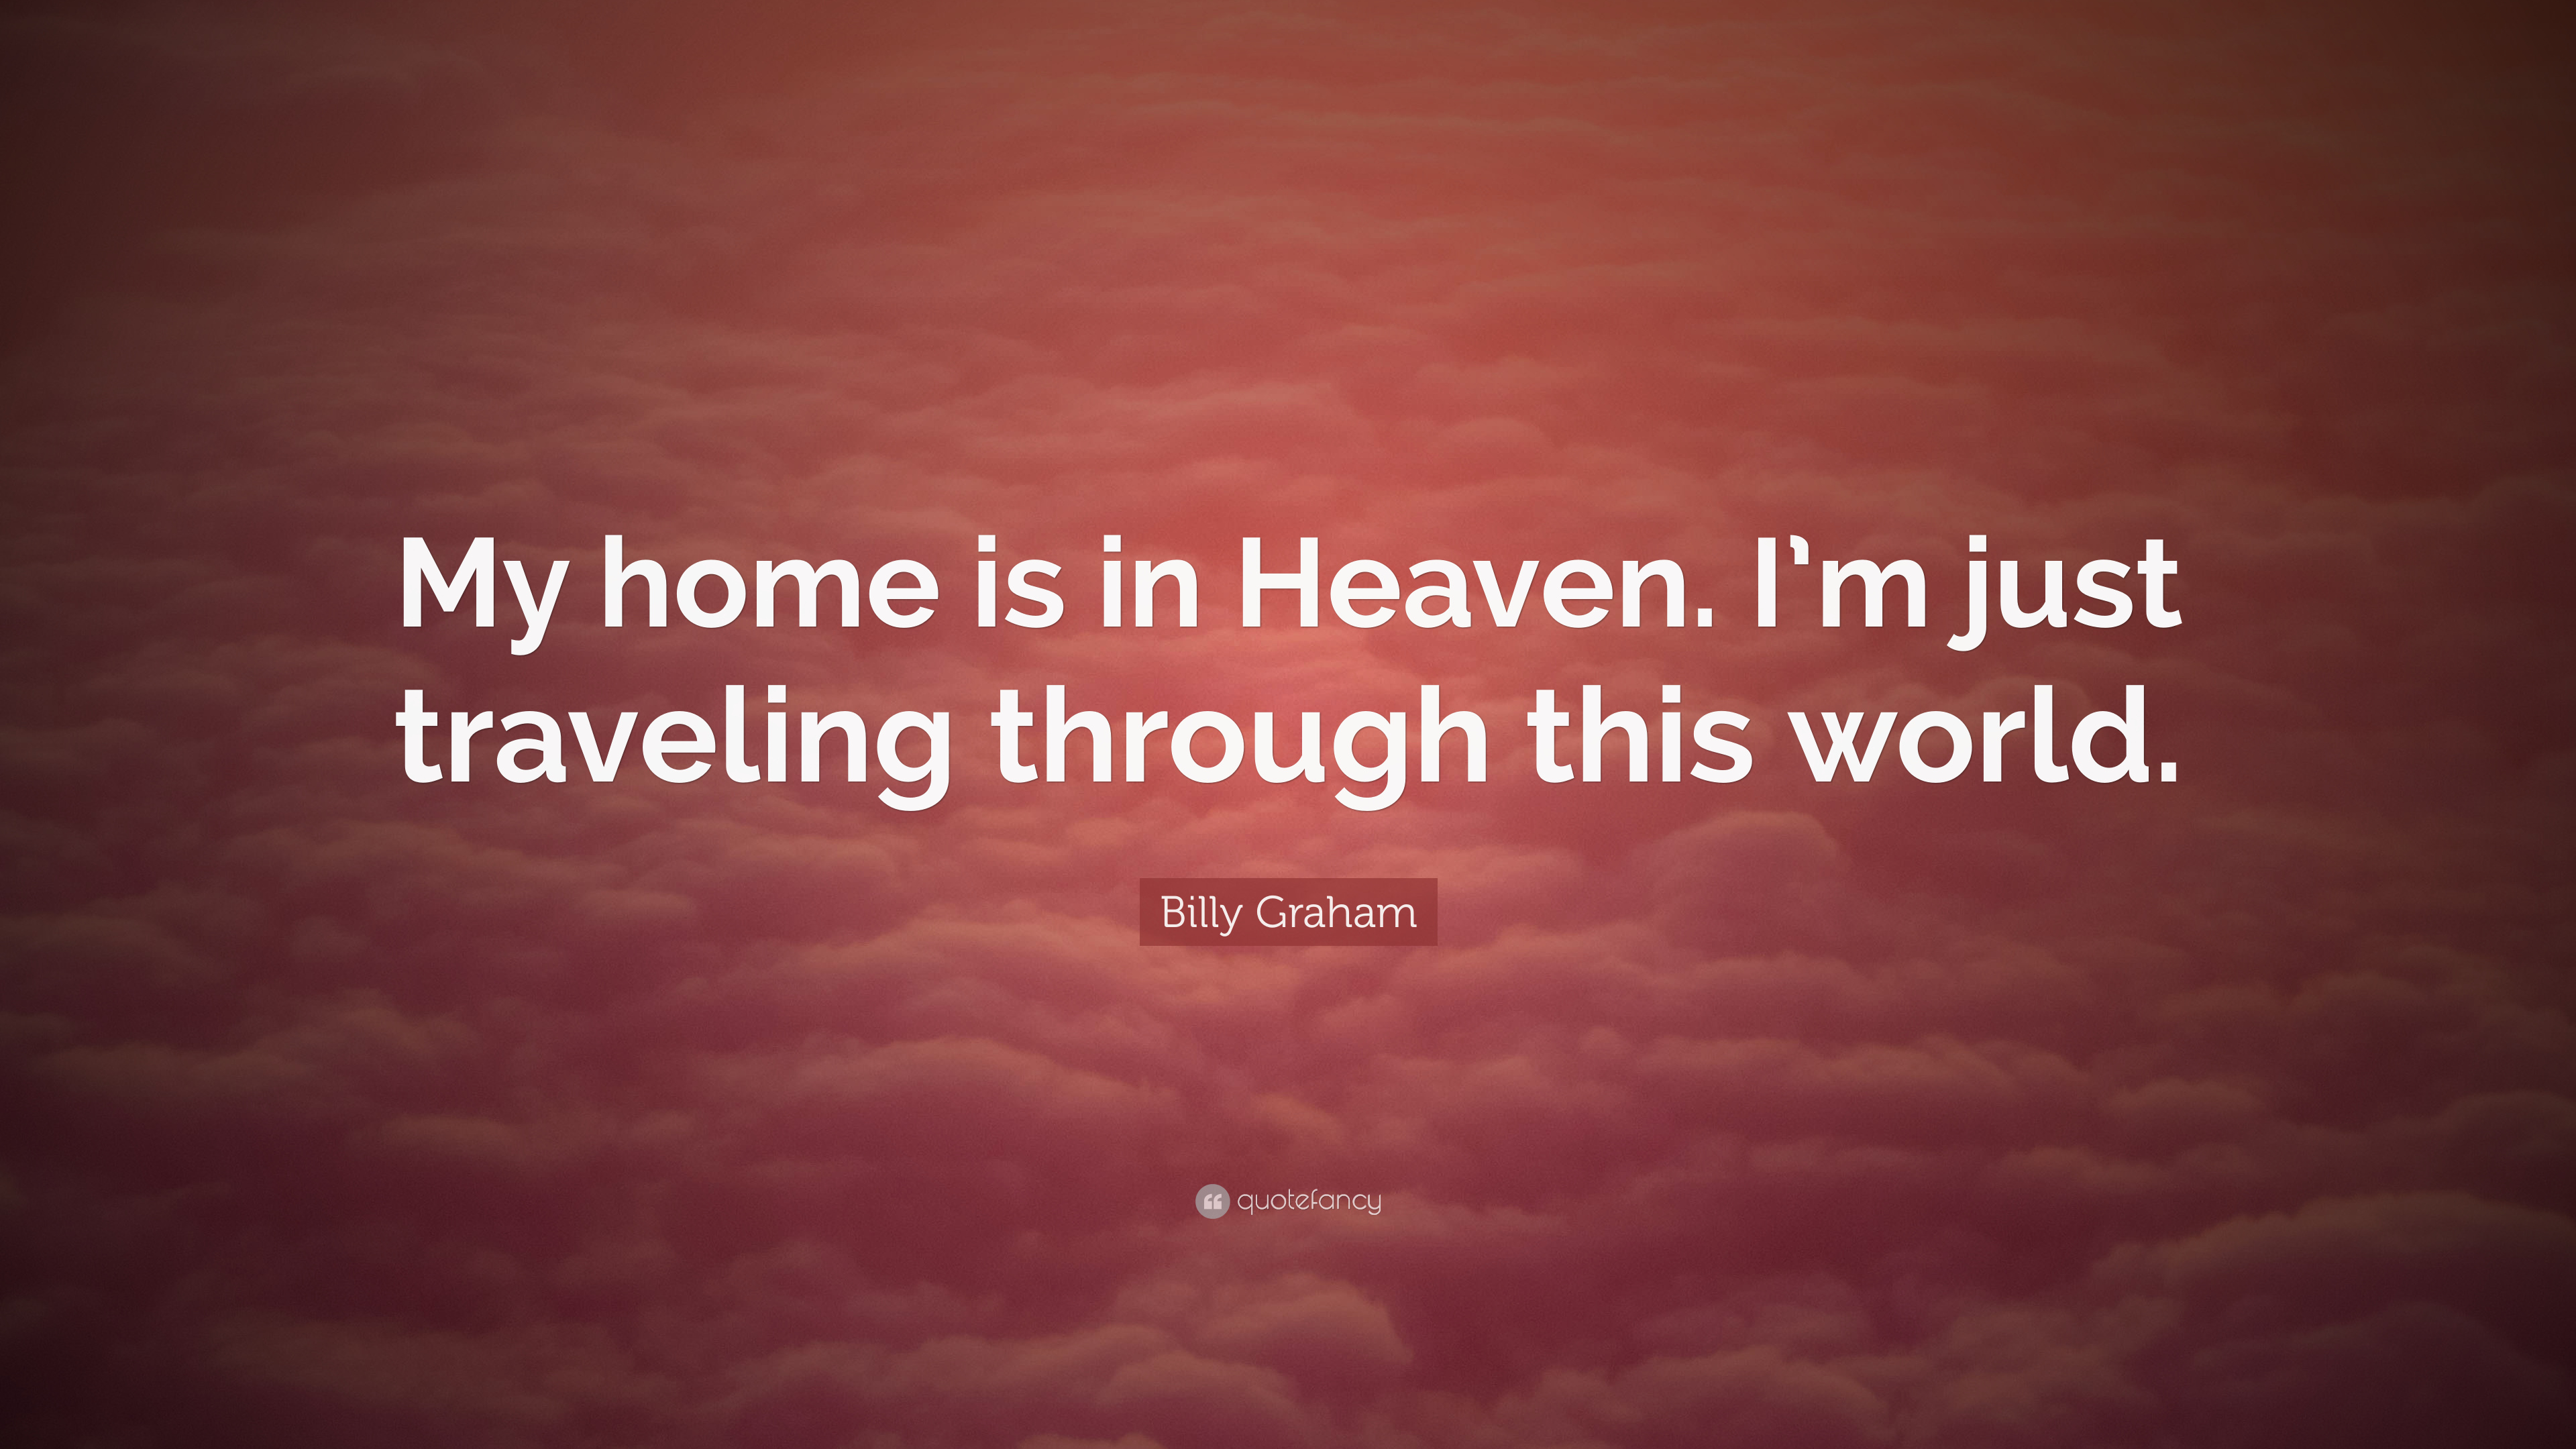 Quotes About Heaven Heaven Quotes 40 Wallpapers  Quotefancy